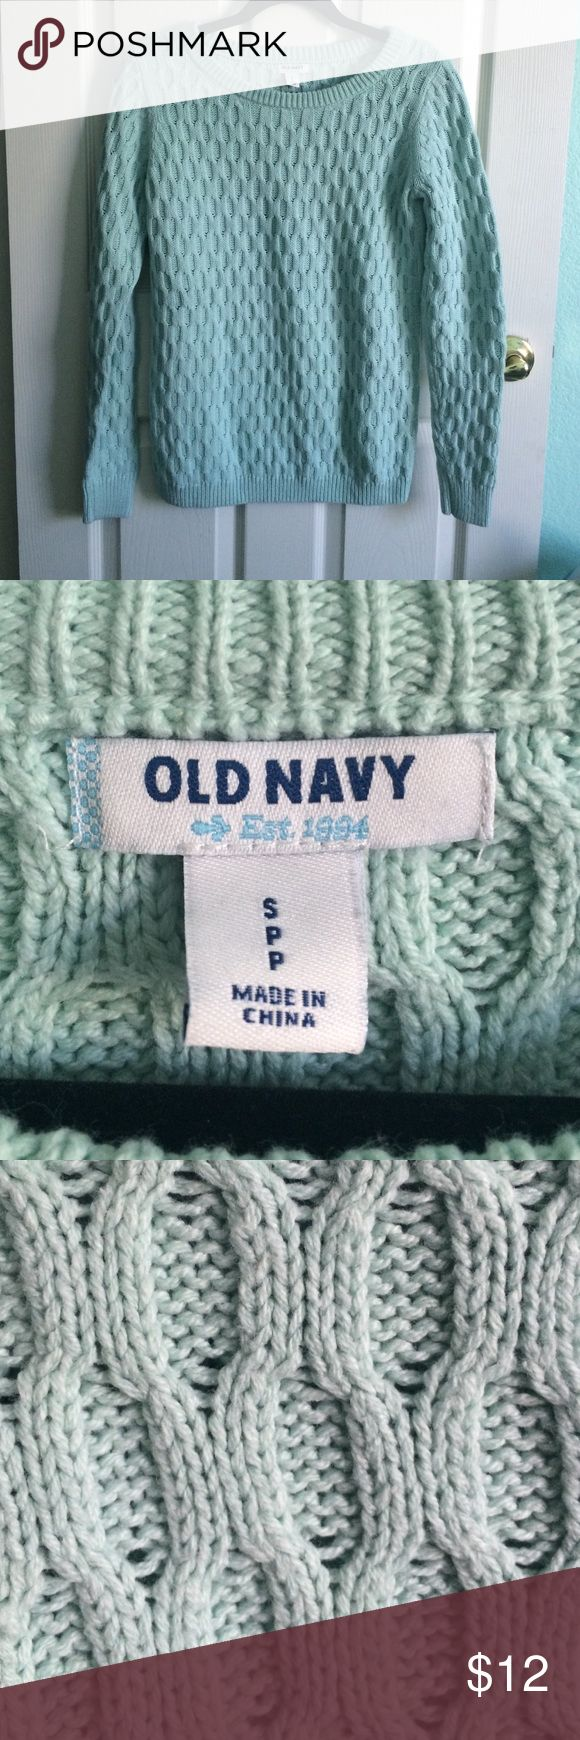 Old Navy Sweater This has been used very lightly and has no flaws! It is very warm and comfy for use in the winter, and goes with virtually everything, since it's mint green. Closet must! Old Navy Sweaters